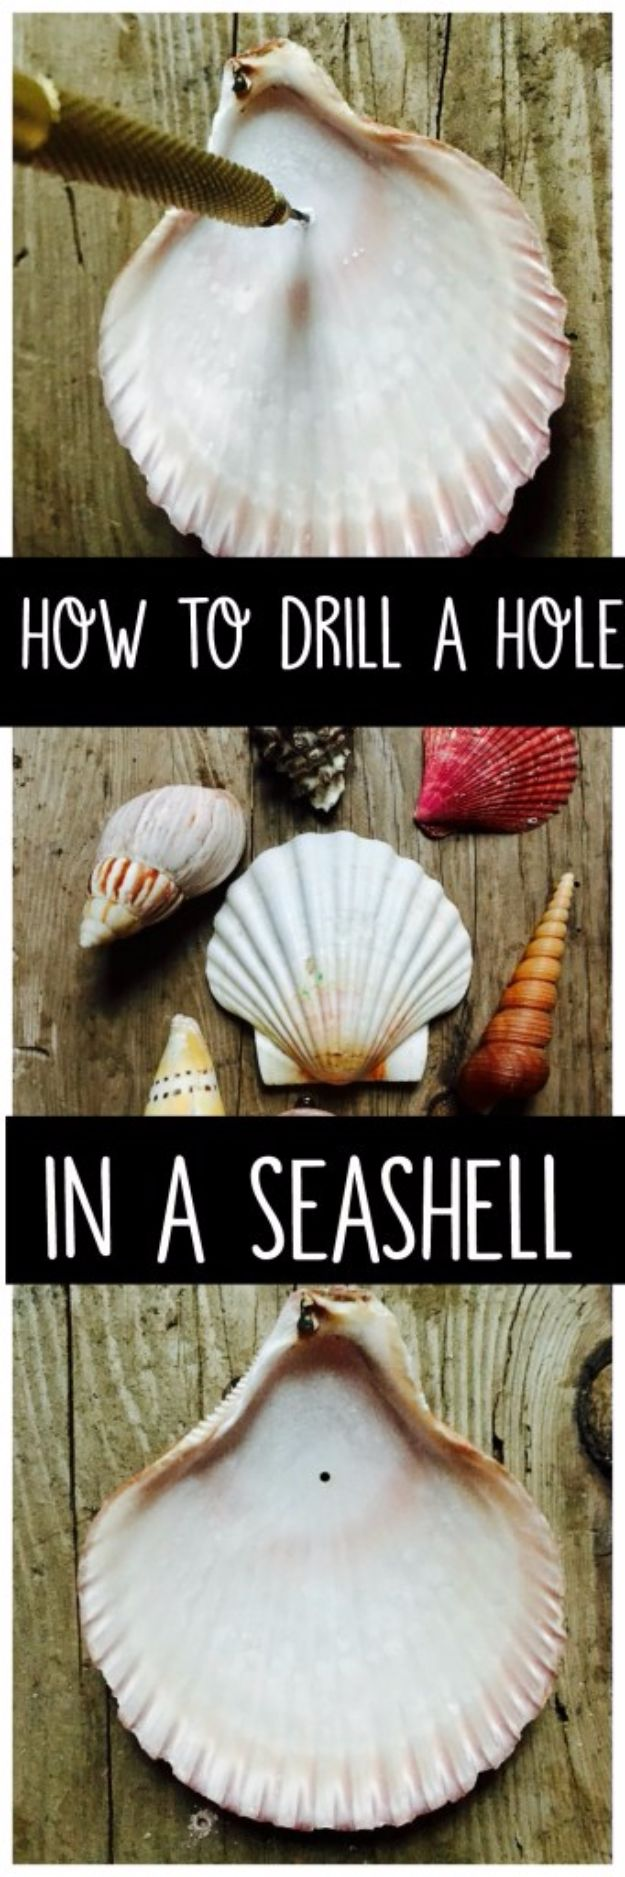 DIY Ideas With Sea Shells - Drill A Hole In A Seashell - Best Cute Sea Shell Crafts for Adults and Kids - Easy Beach House Decor Ideas With Sand and Large Shell Art - Wall Decor and Home, Bedroom and Bath - Cheap DIY Projects Make Awesome Homemade Gifts http://diyjoy.com/diy-ideas-sea-shells